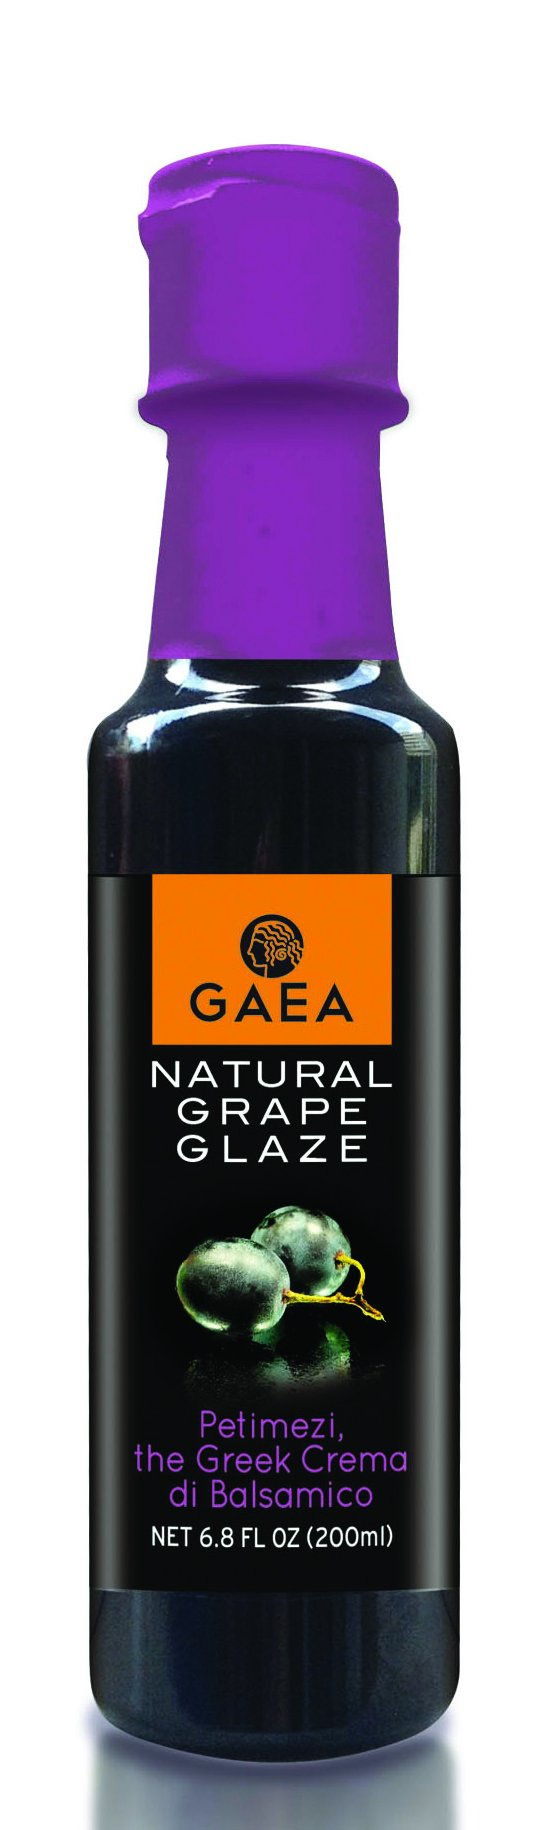 Gaea Natural Grape Glaze Crema Di Balsamico Grape Reduction (6.8 oz Bottle)